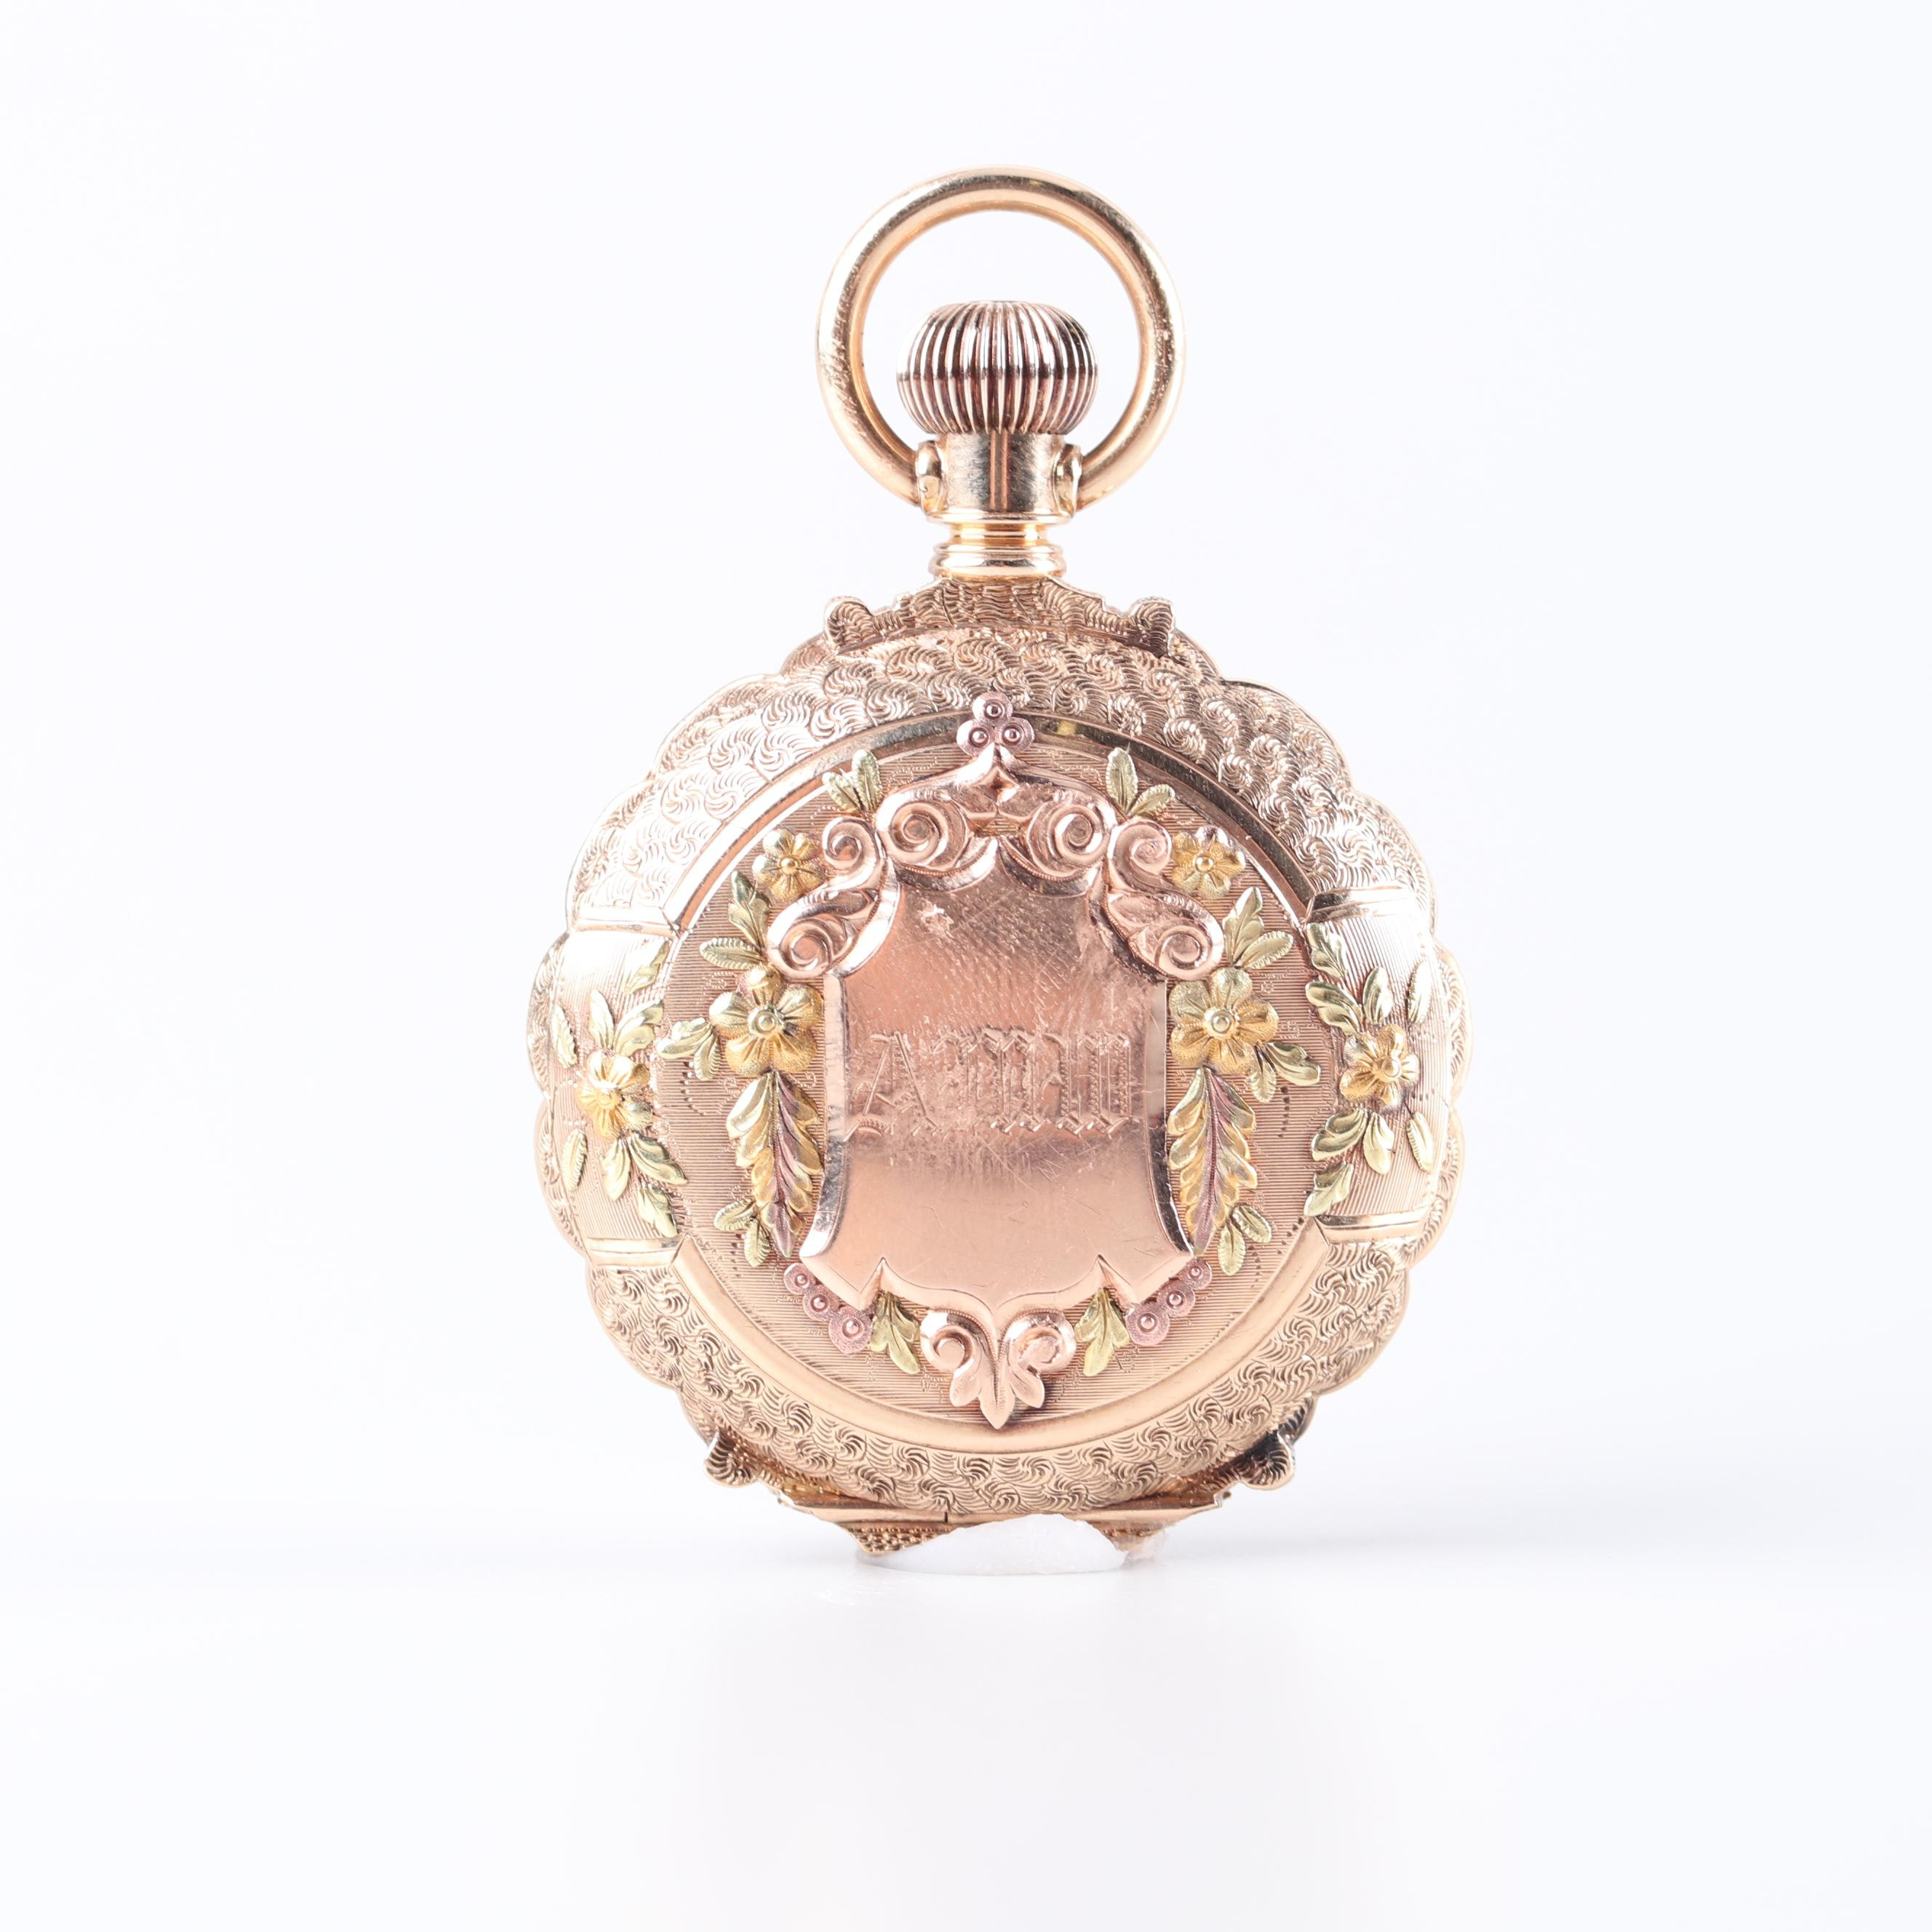 Elgin 14K Tri Color Gold Old Mine Cut Diamond Accent Pocket Watch, 1890